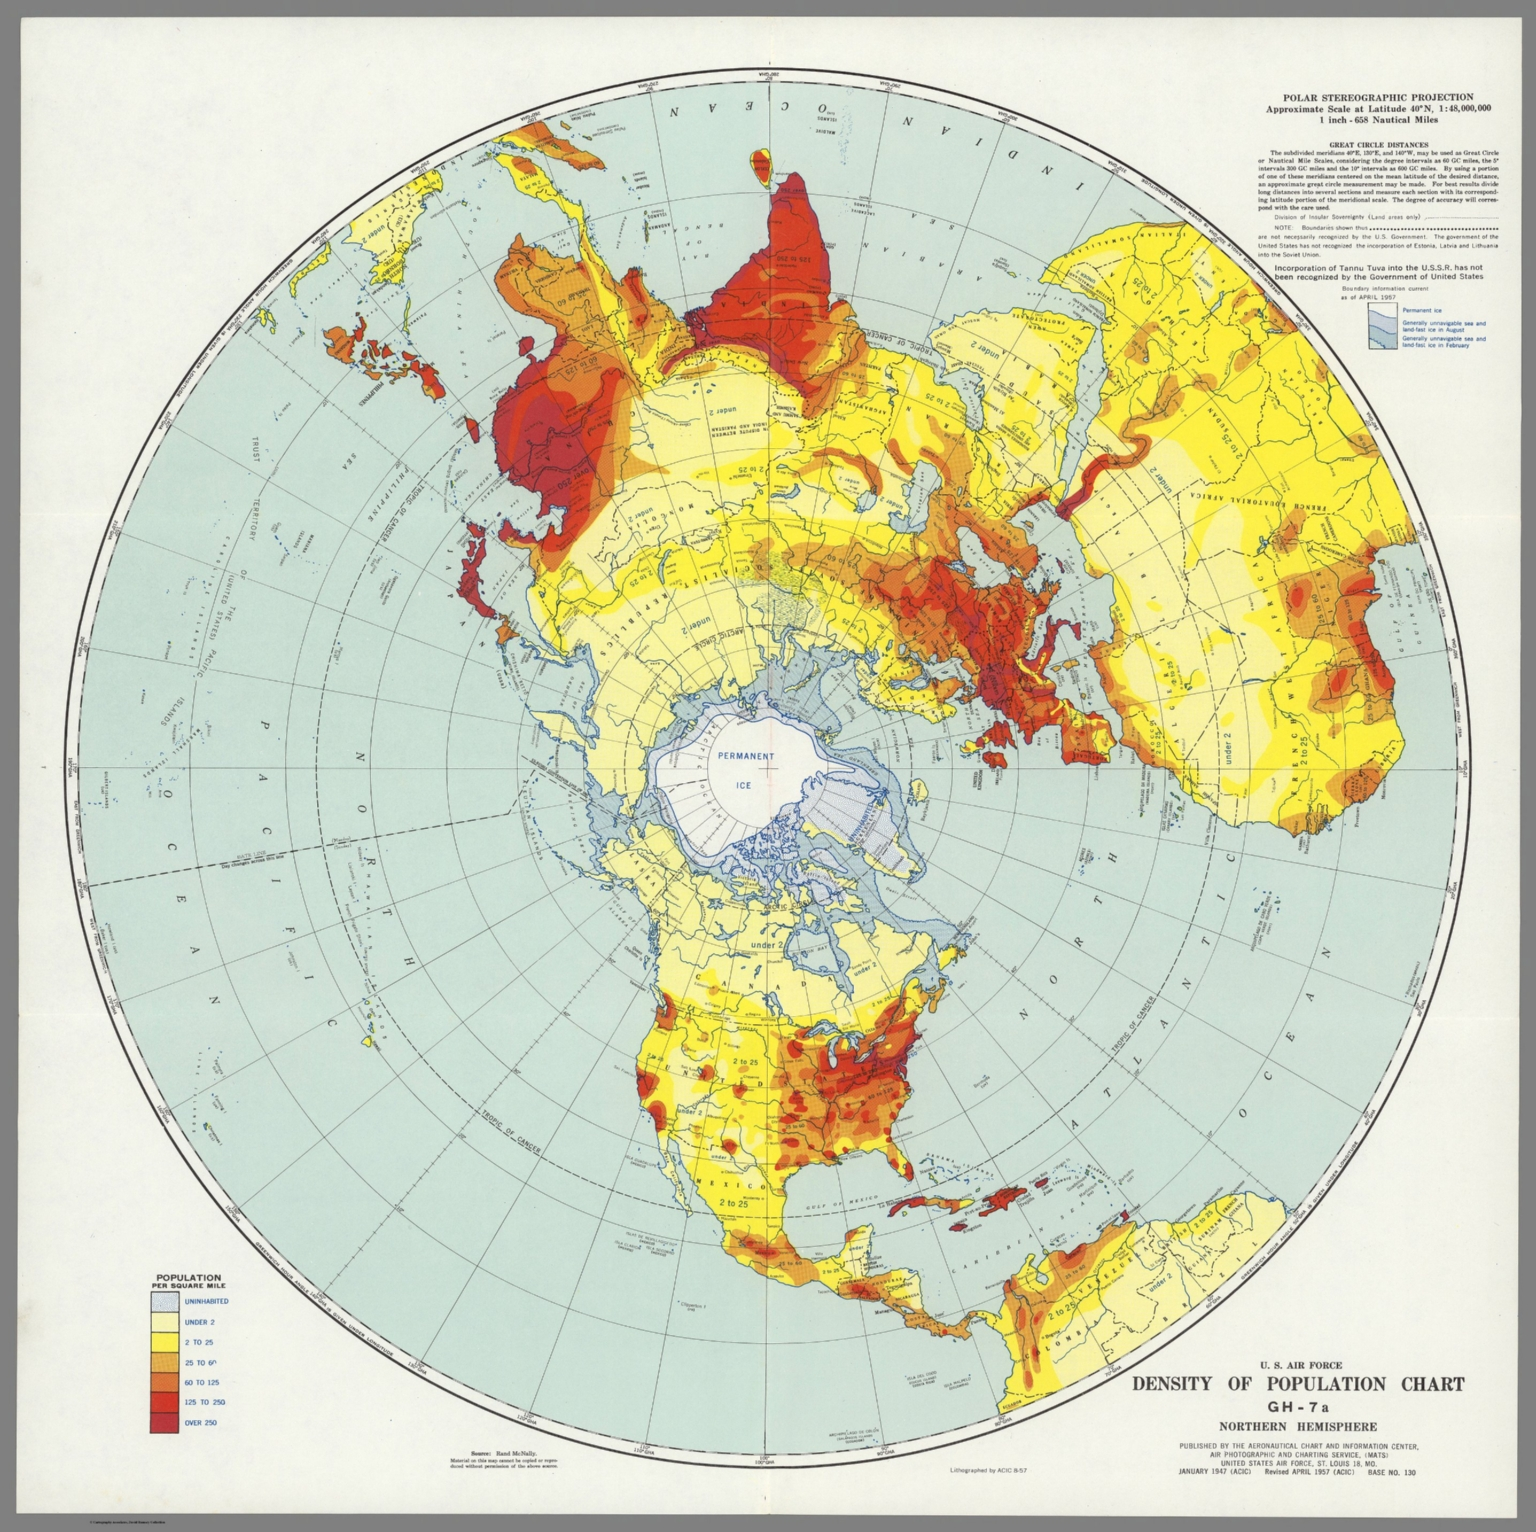 u s air force density of population chart gh 7a northern hemisphere